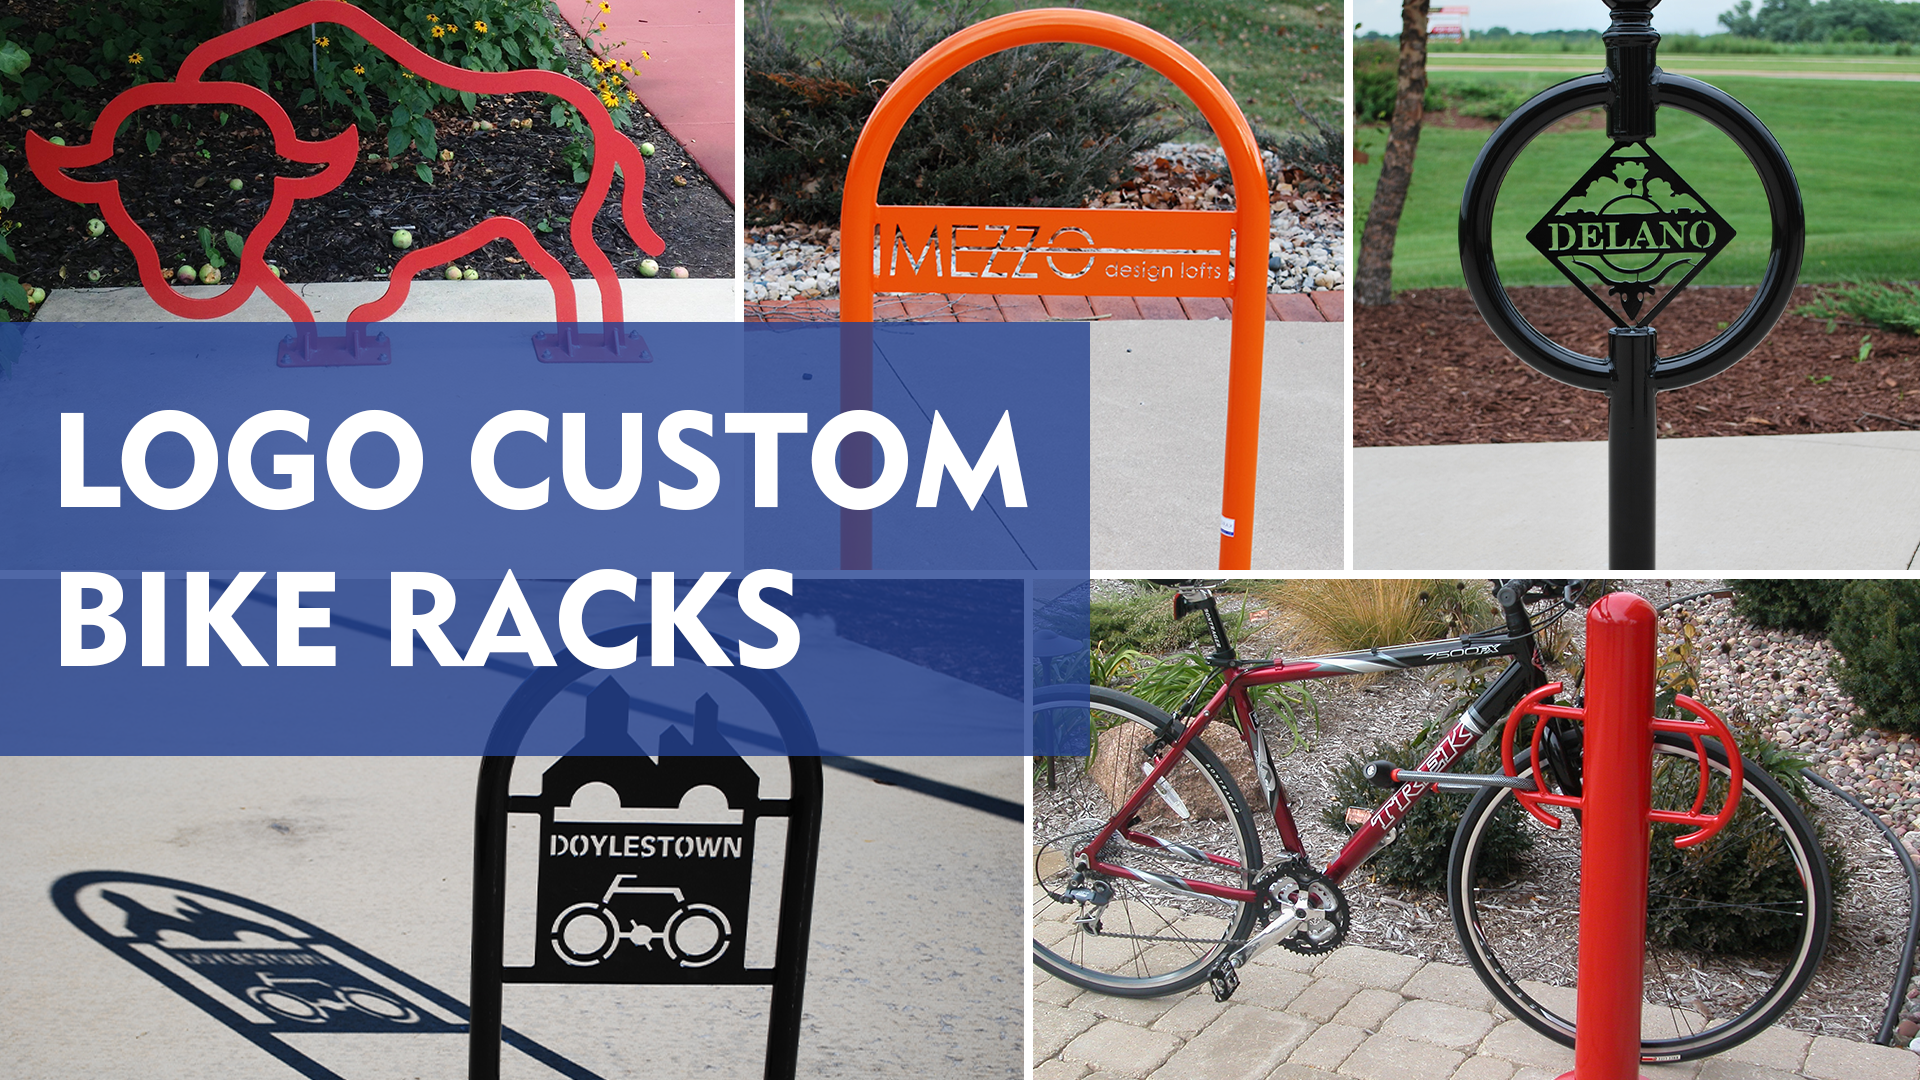 Logo-Custom-Bike-Racks-Featured-Image